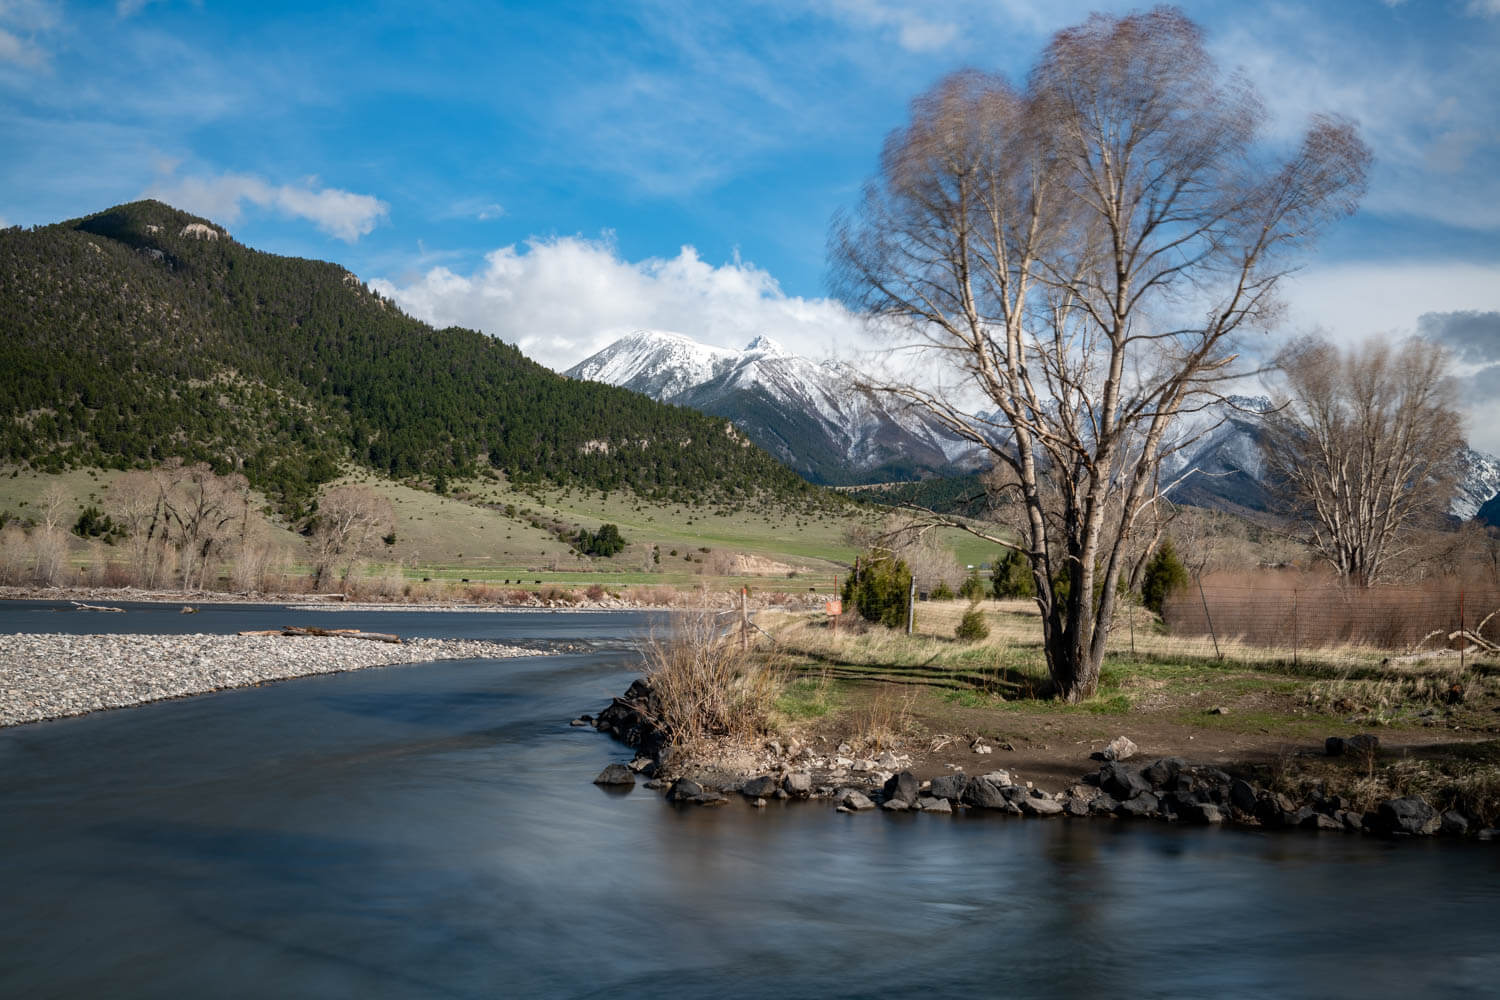 The banks of the Yellowstone River just south of Livingston, Montana